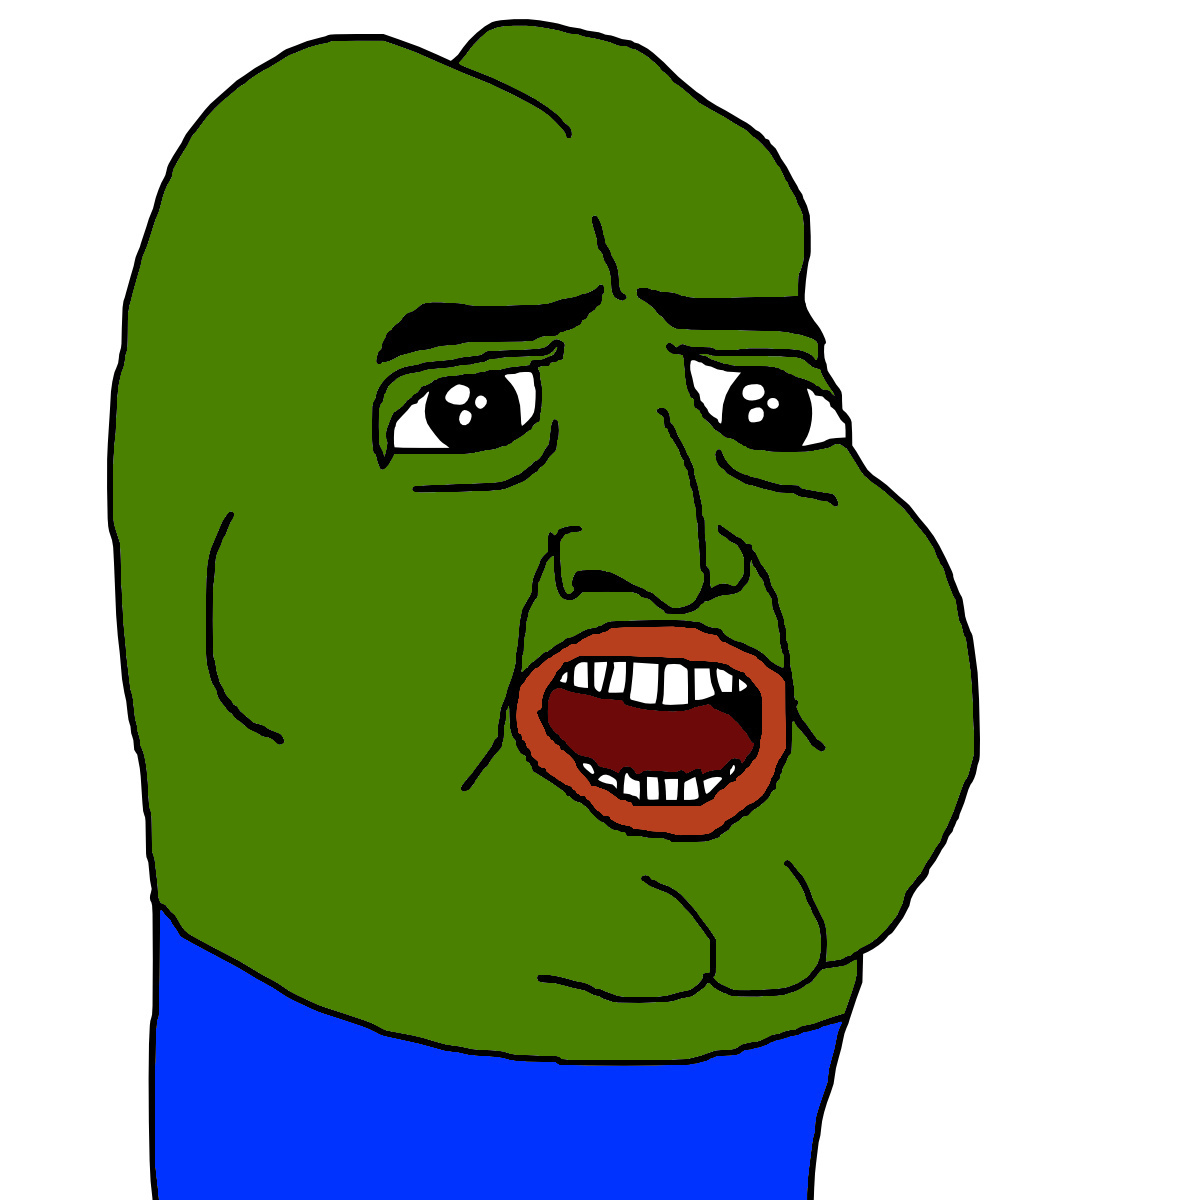 Pin Rare Pepe The Frog Meme 1200x1200